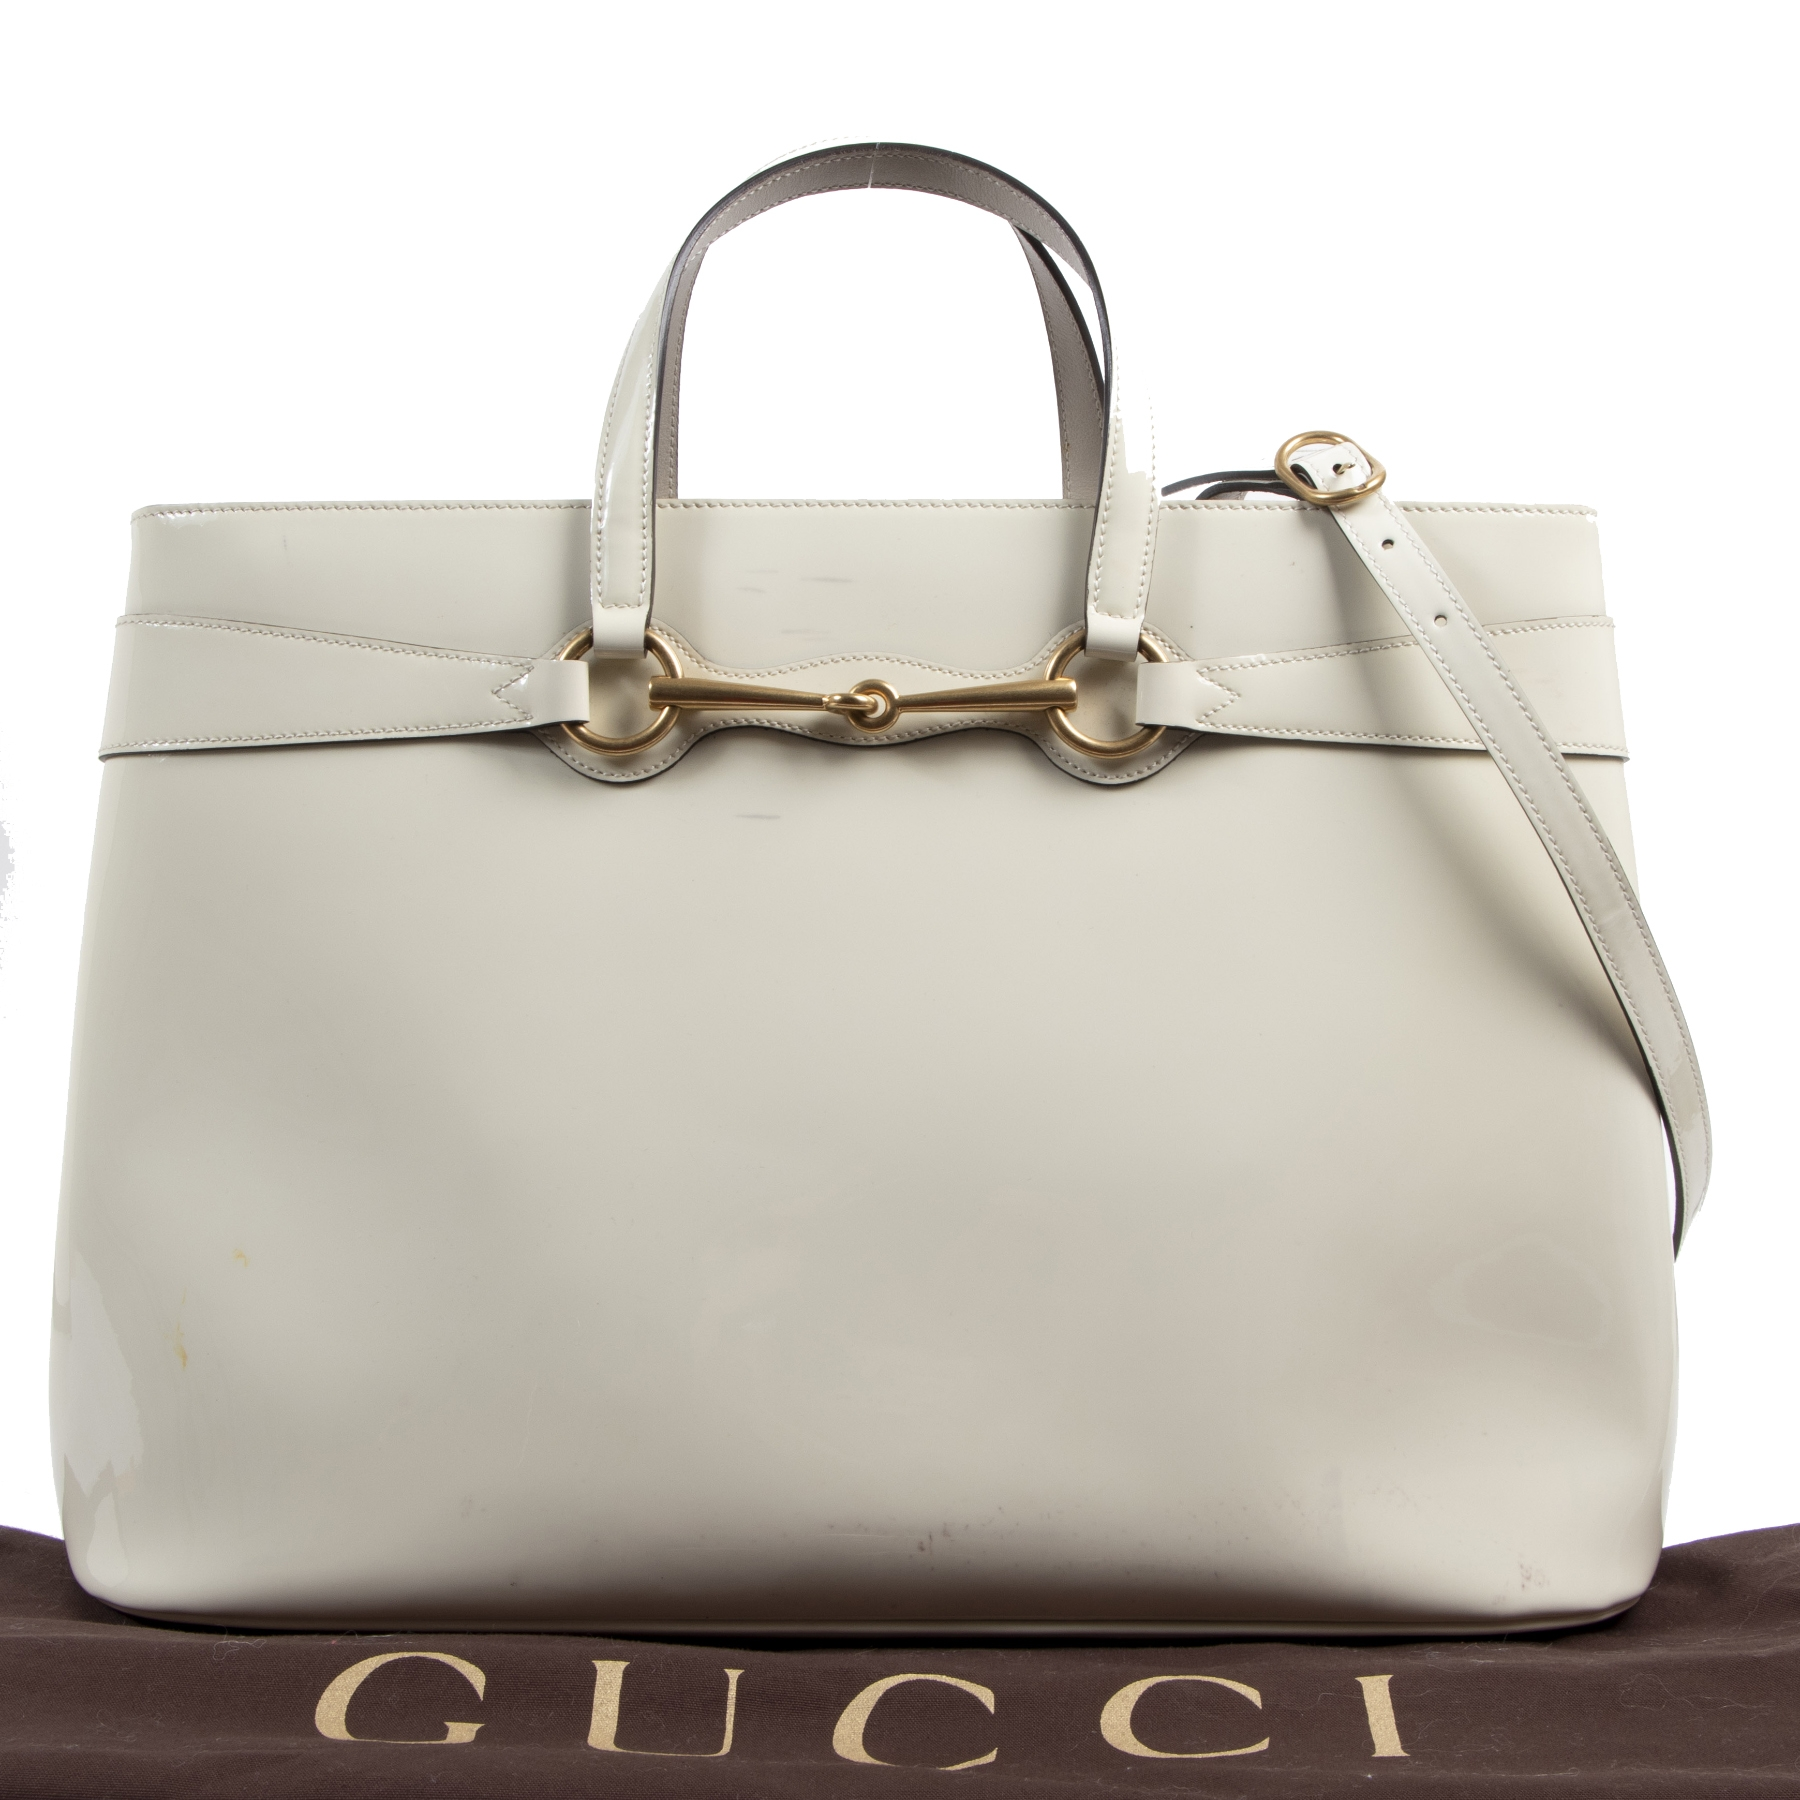 Authentieke tweedehands vintage Gucci White Horsebit Convertible Bag koop online webshop LabelLOV